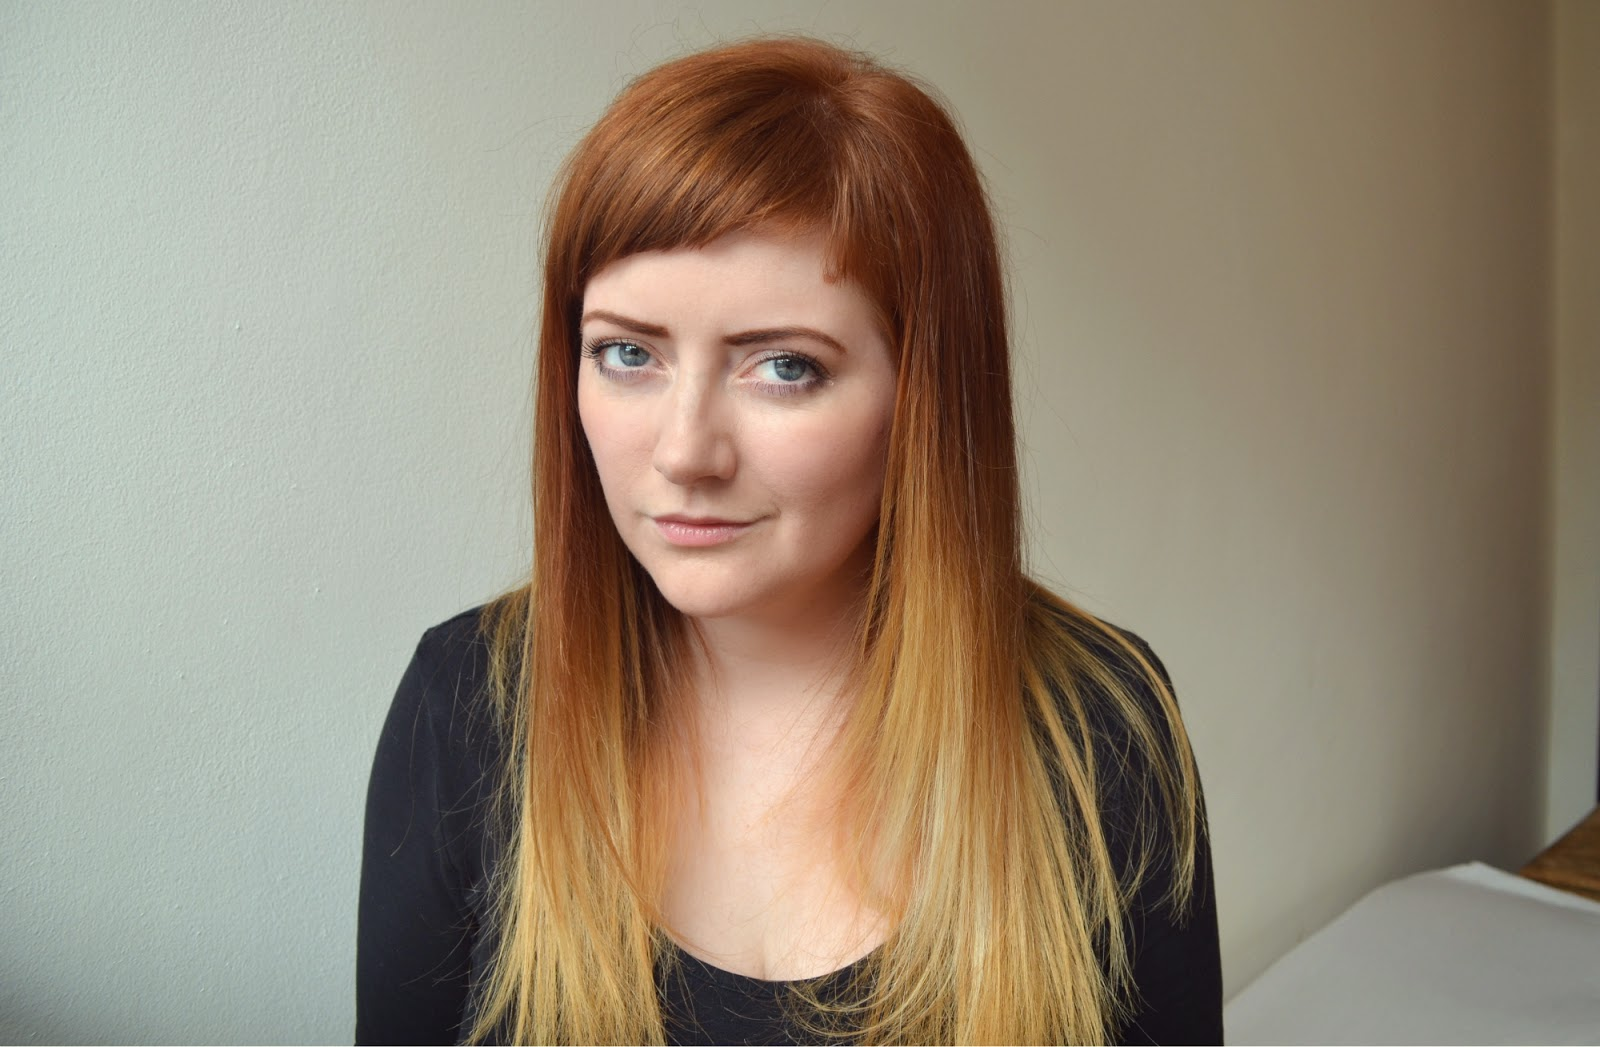 Ginger Ombre Hair After ombre hair was cool,